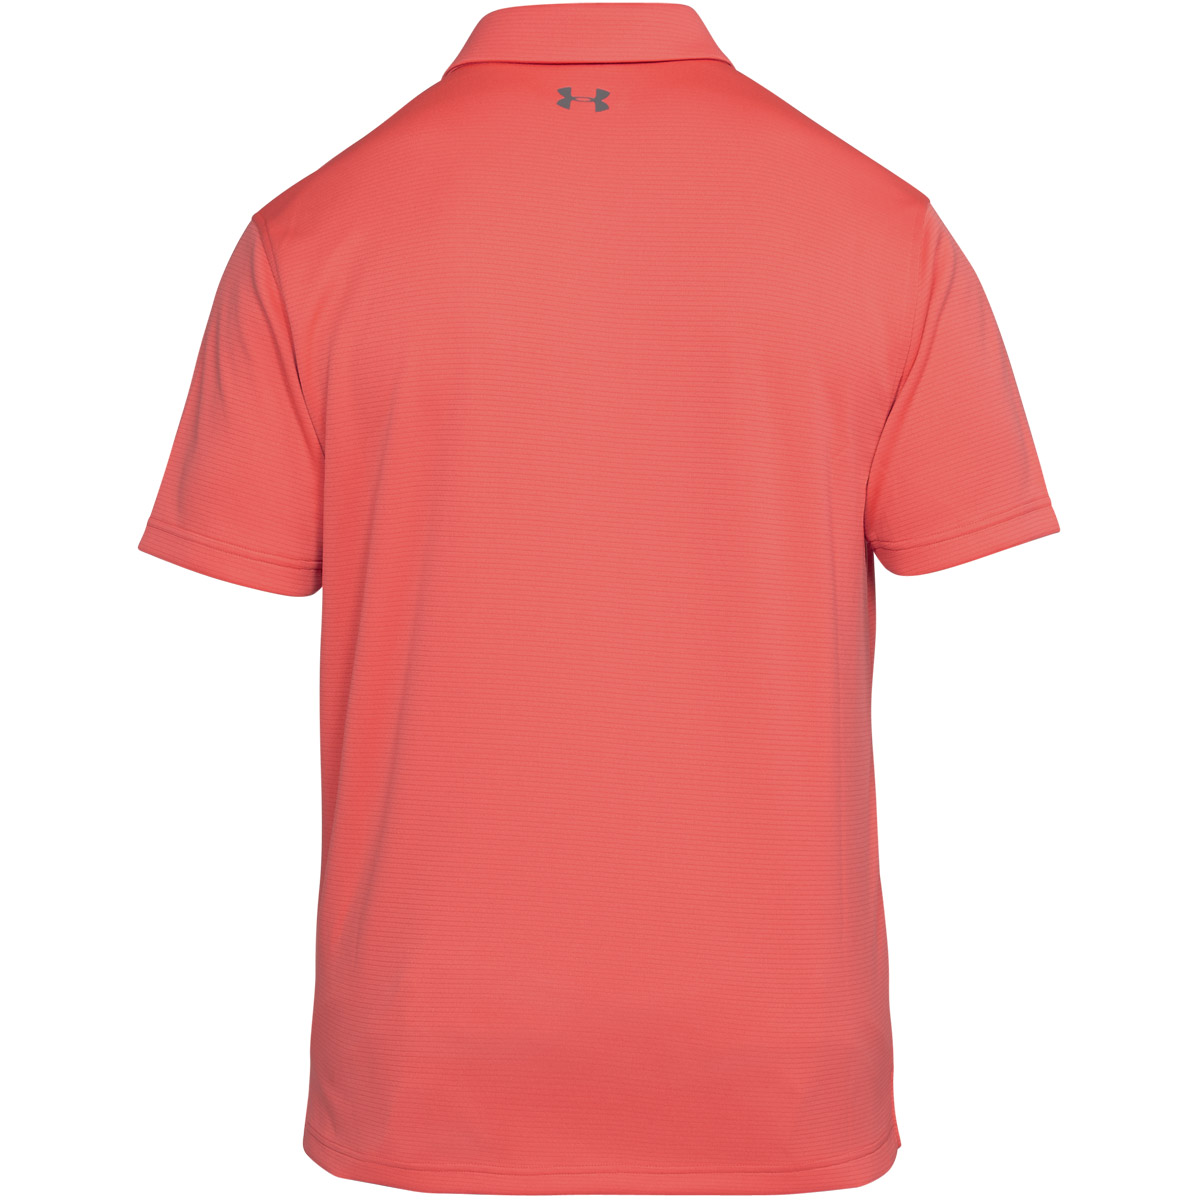 Under-Armour-Mens-2019-Golf-Tech-Wicking-Textured-Soft-Light-Polo-Shirt thumbnail 91